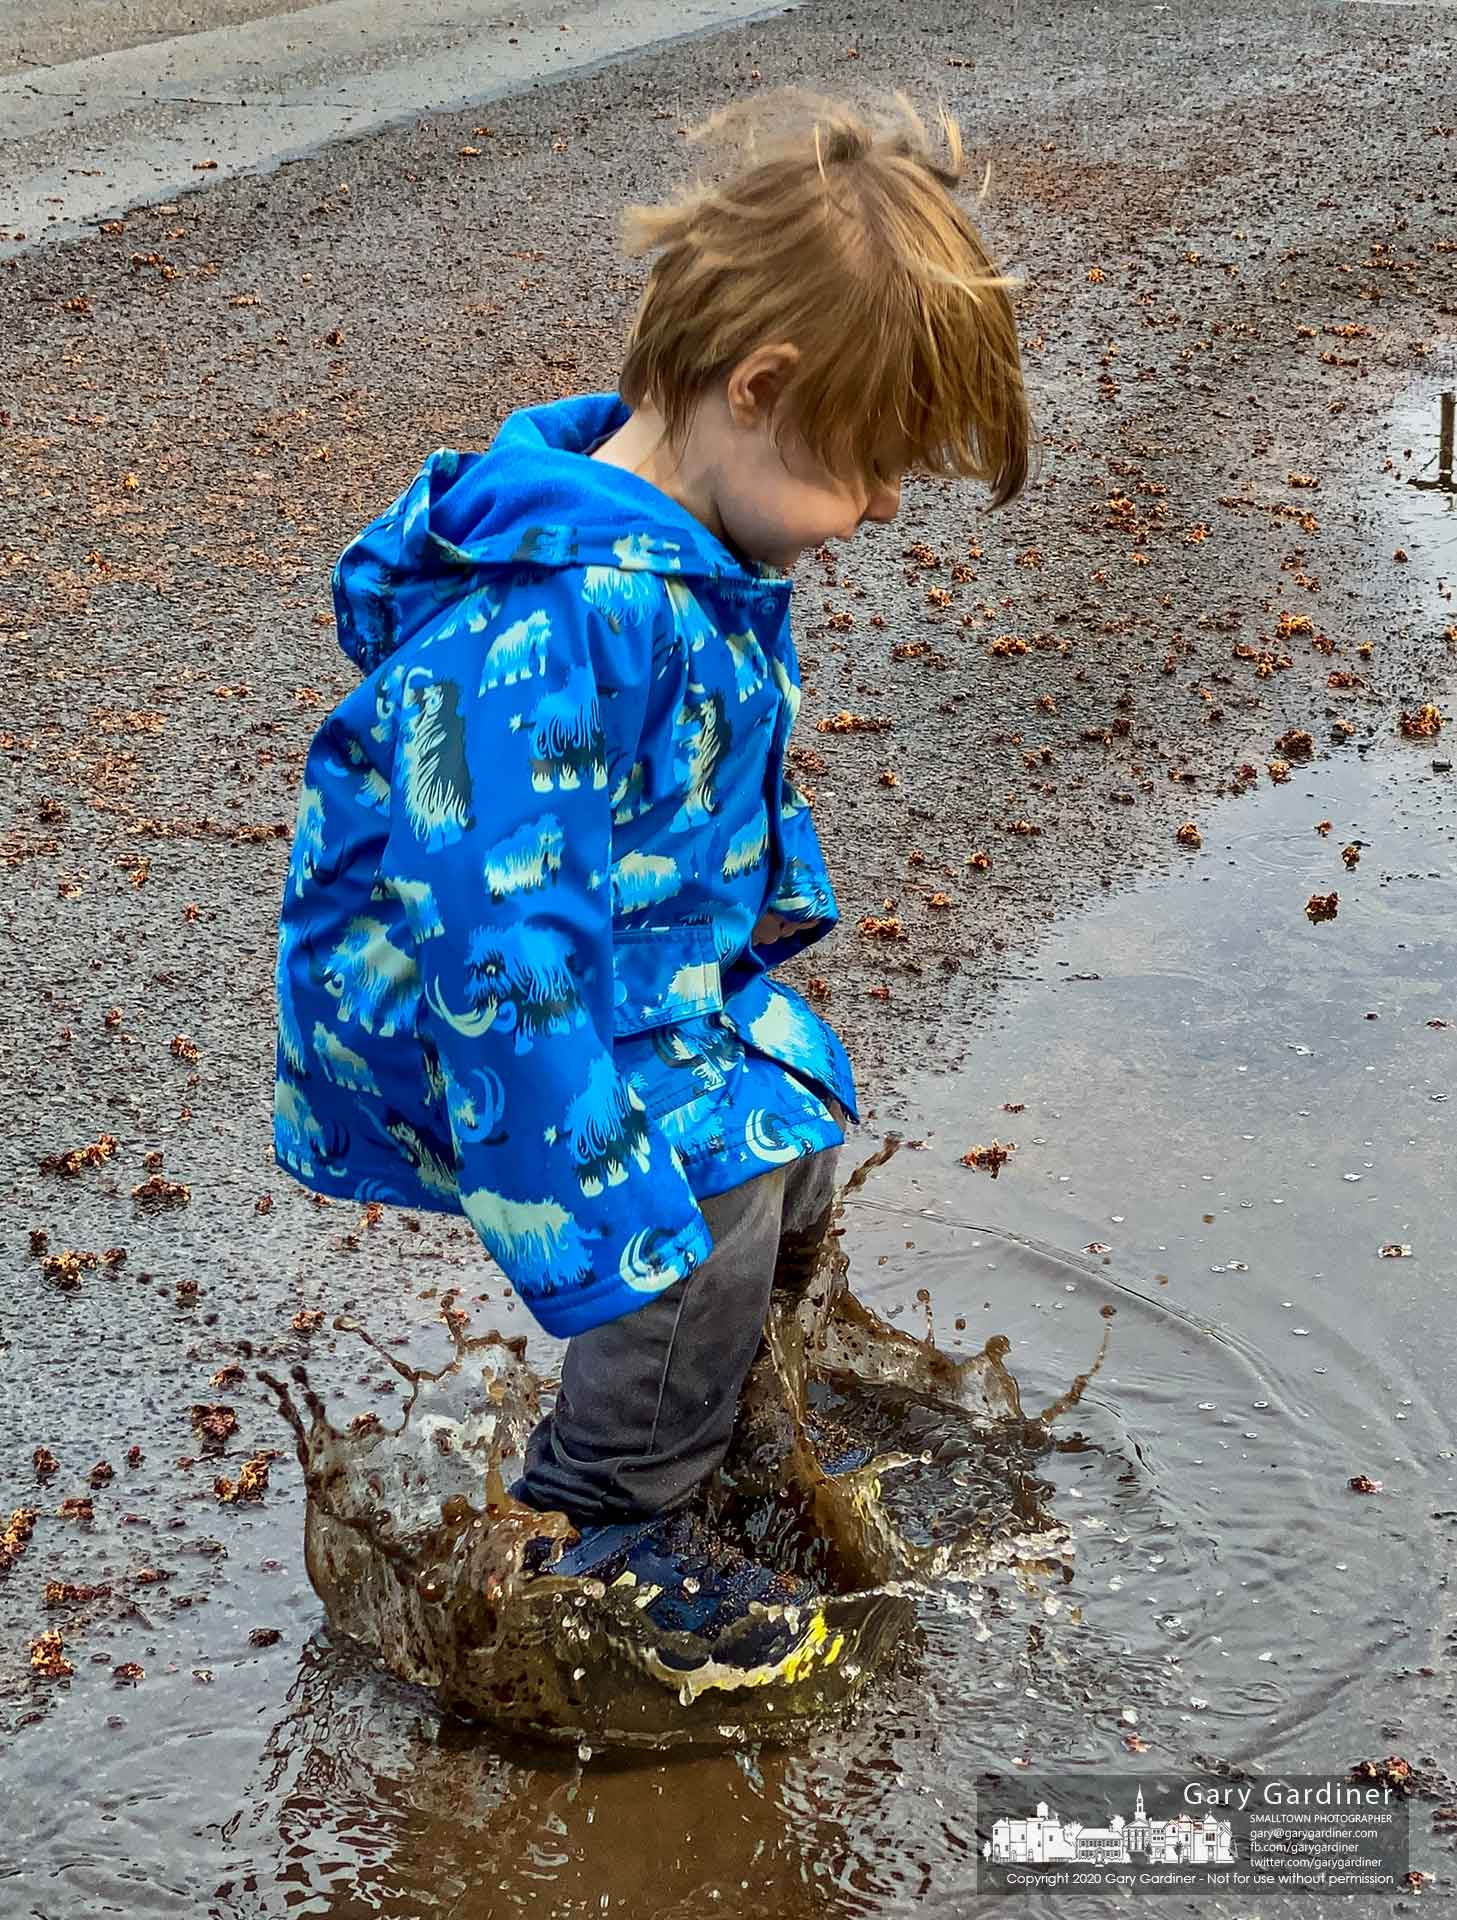 A youngster satisfies his curiosity and playtime with a series of splashes in a puddle on Vine Street where his father took home for a morning walk. My Final Photo for March 28, 2020.